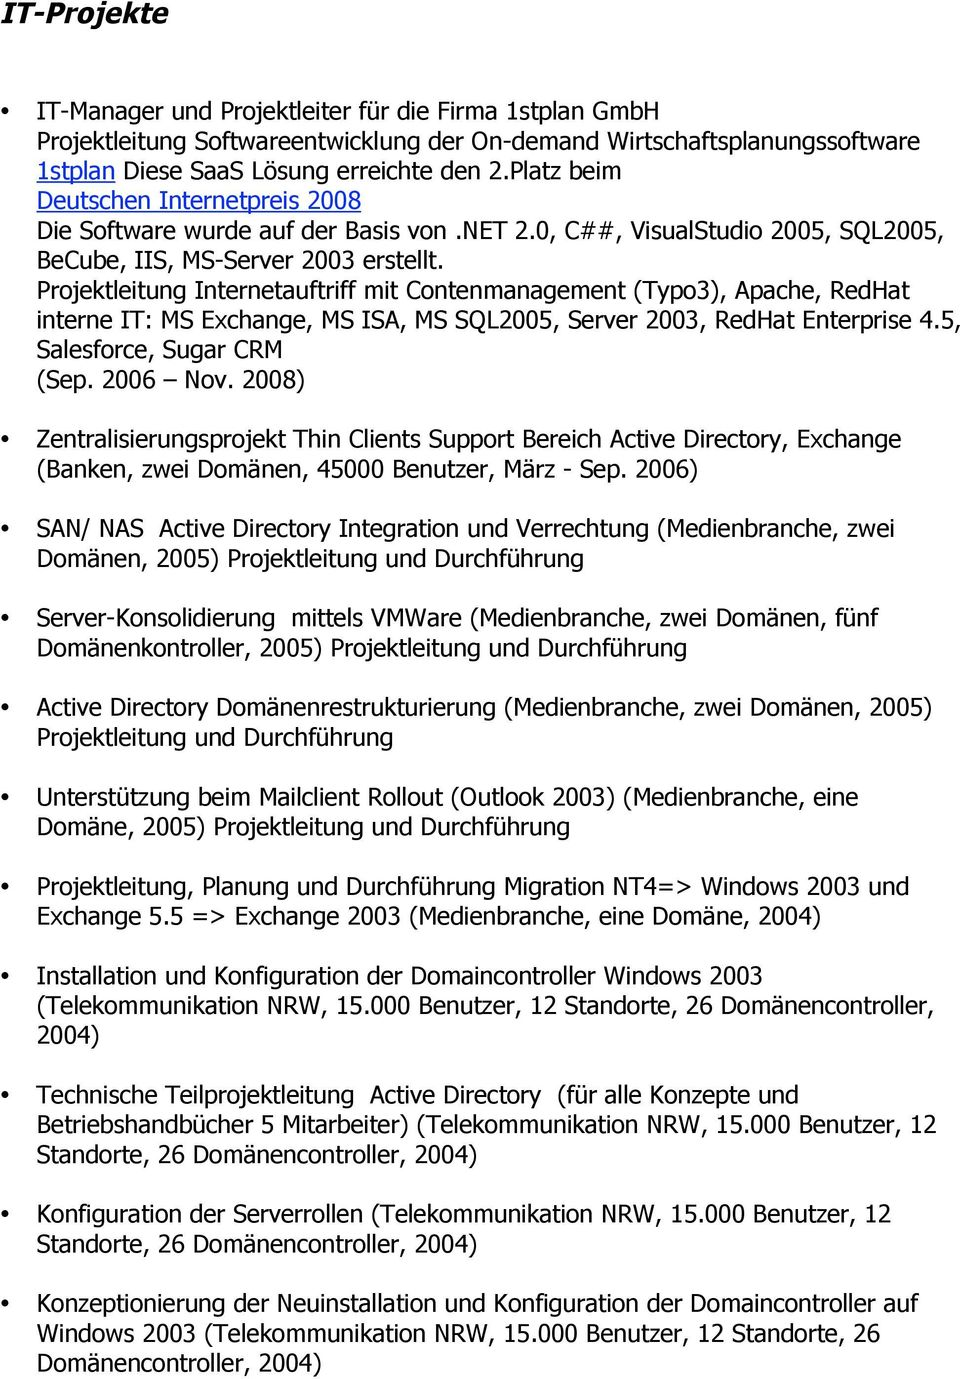 Projektleitung Internetauftriff mit Contenmanagement (Typo3), Apache, RedHat interne IT: MS Exchange, MS ISA, MS SQL2005, Server 2003, RedHat Enterprise 4.5, Salesforce, Sugar CRM (Sep. 2006 Nov.